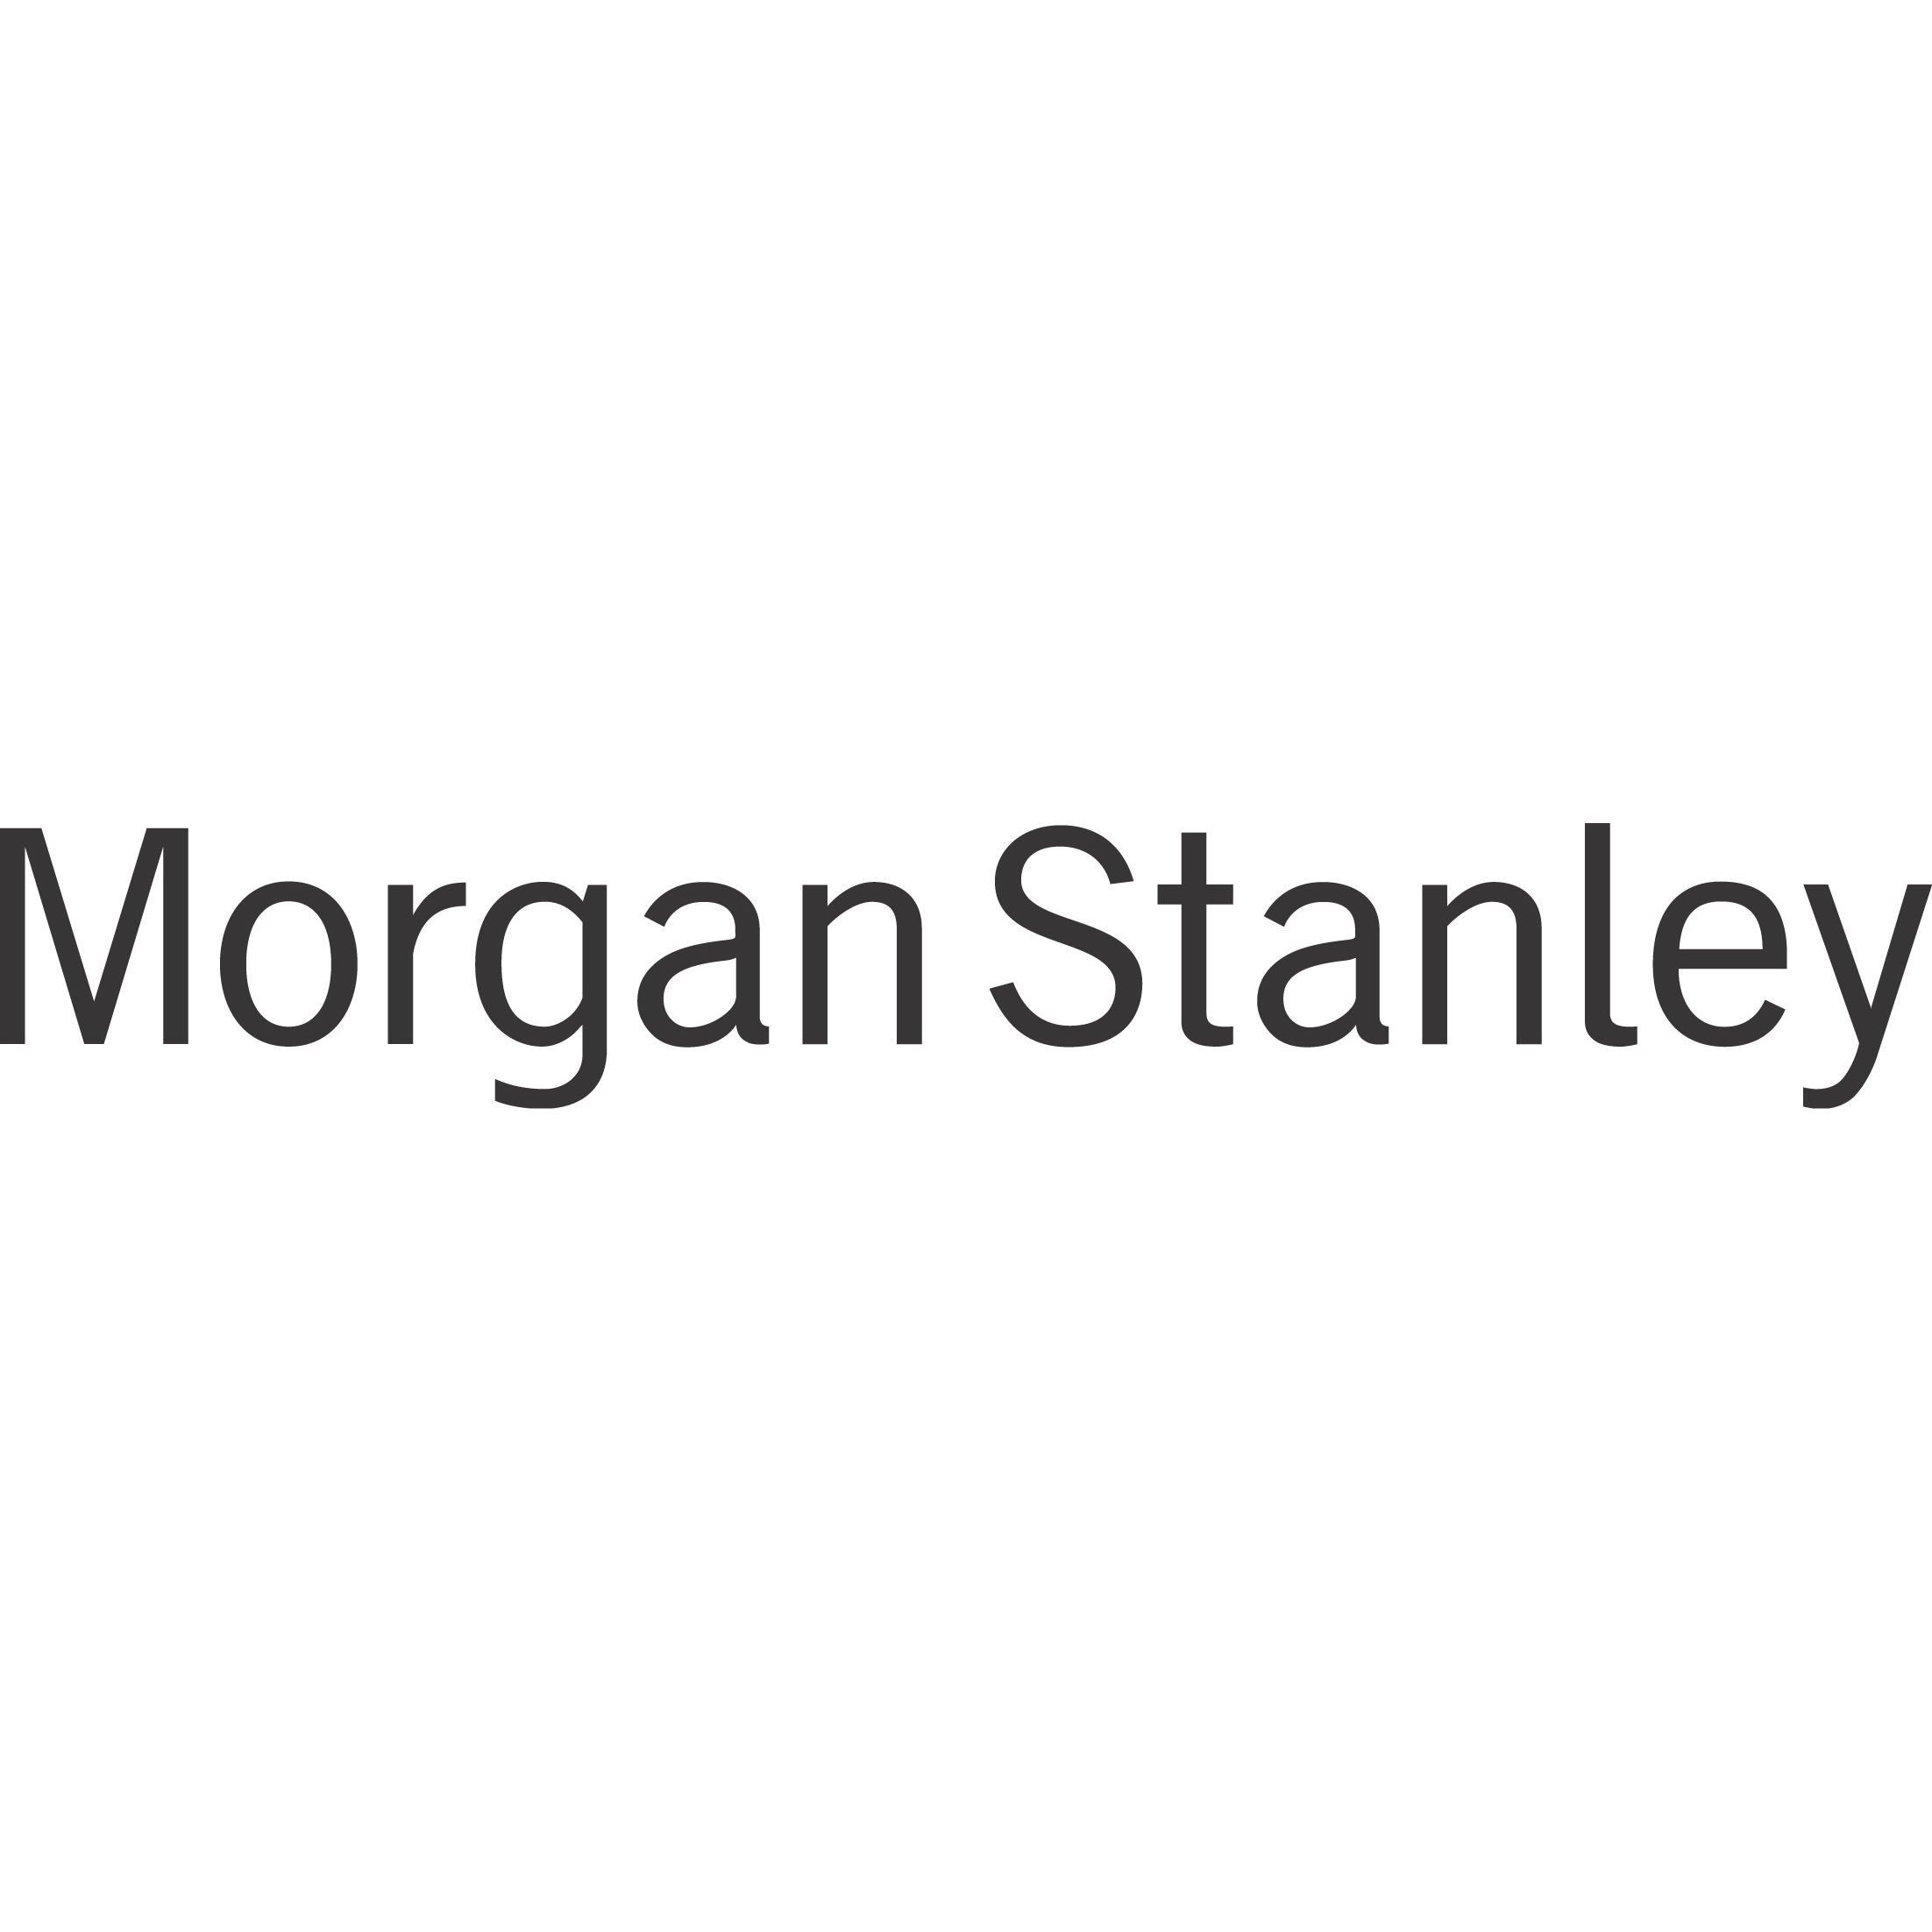 Charles S Montgomery - Morgan Stanley | Financial Advisor in Memphis,Tennessee